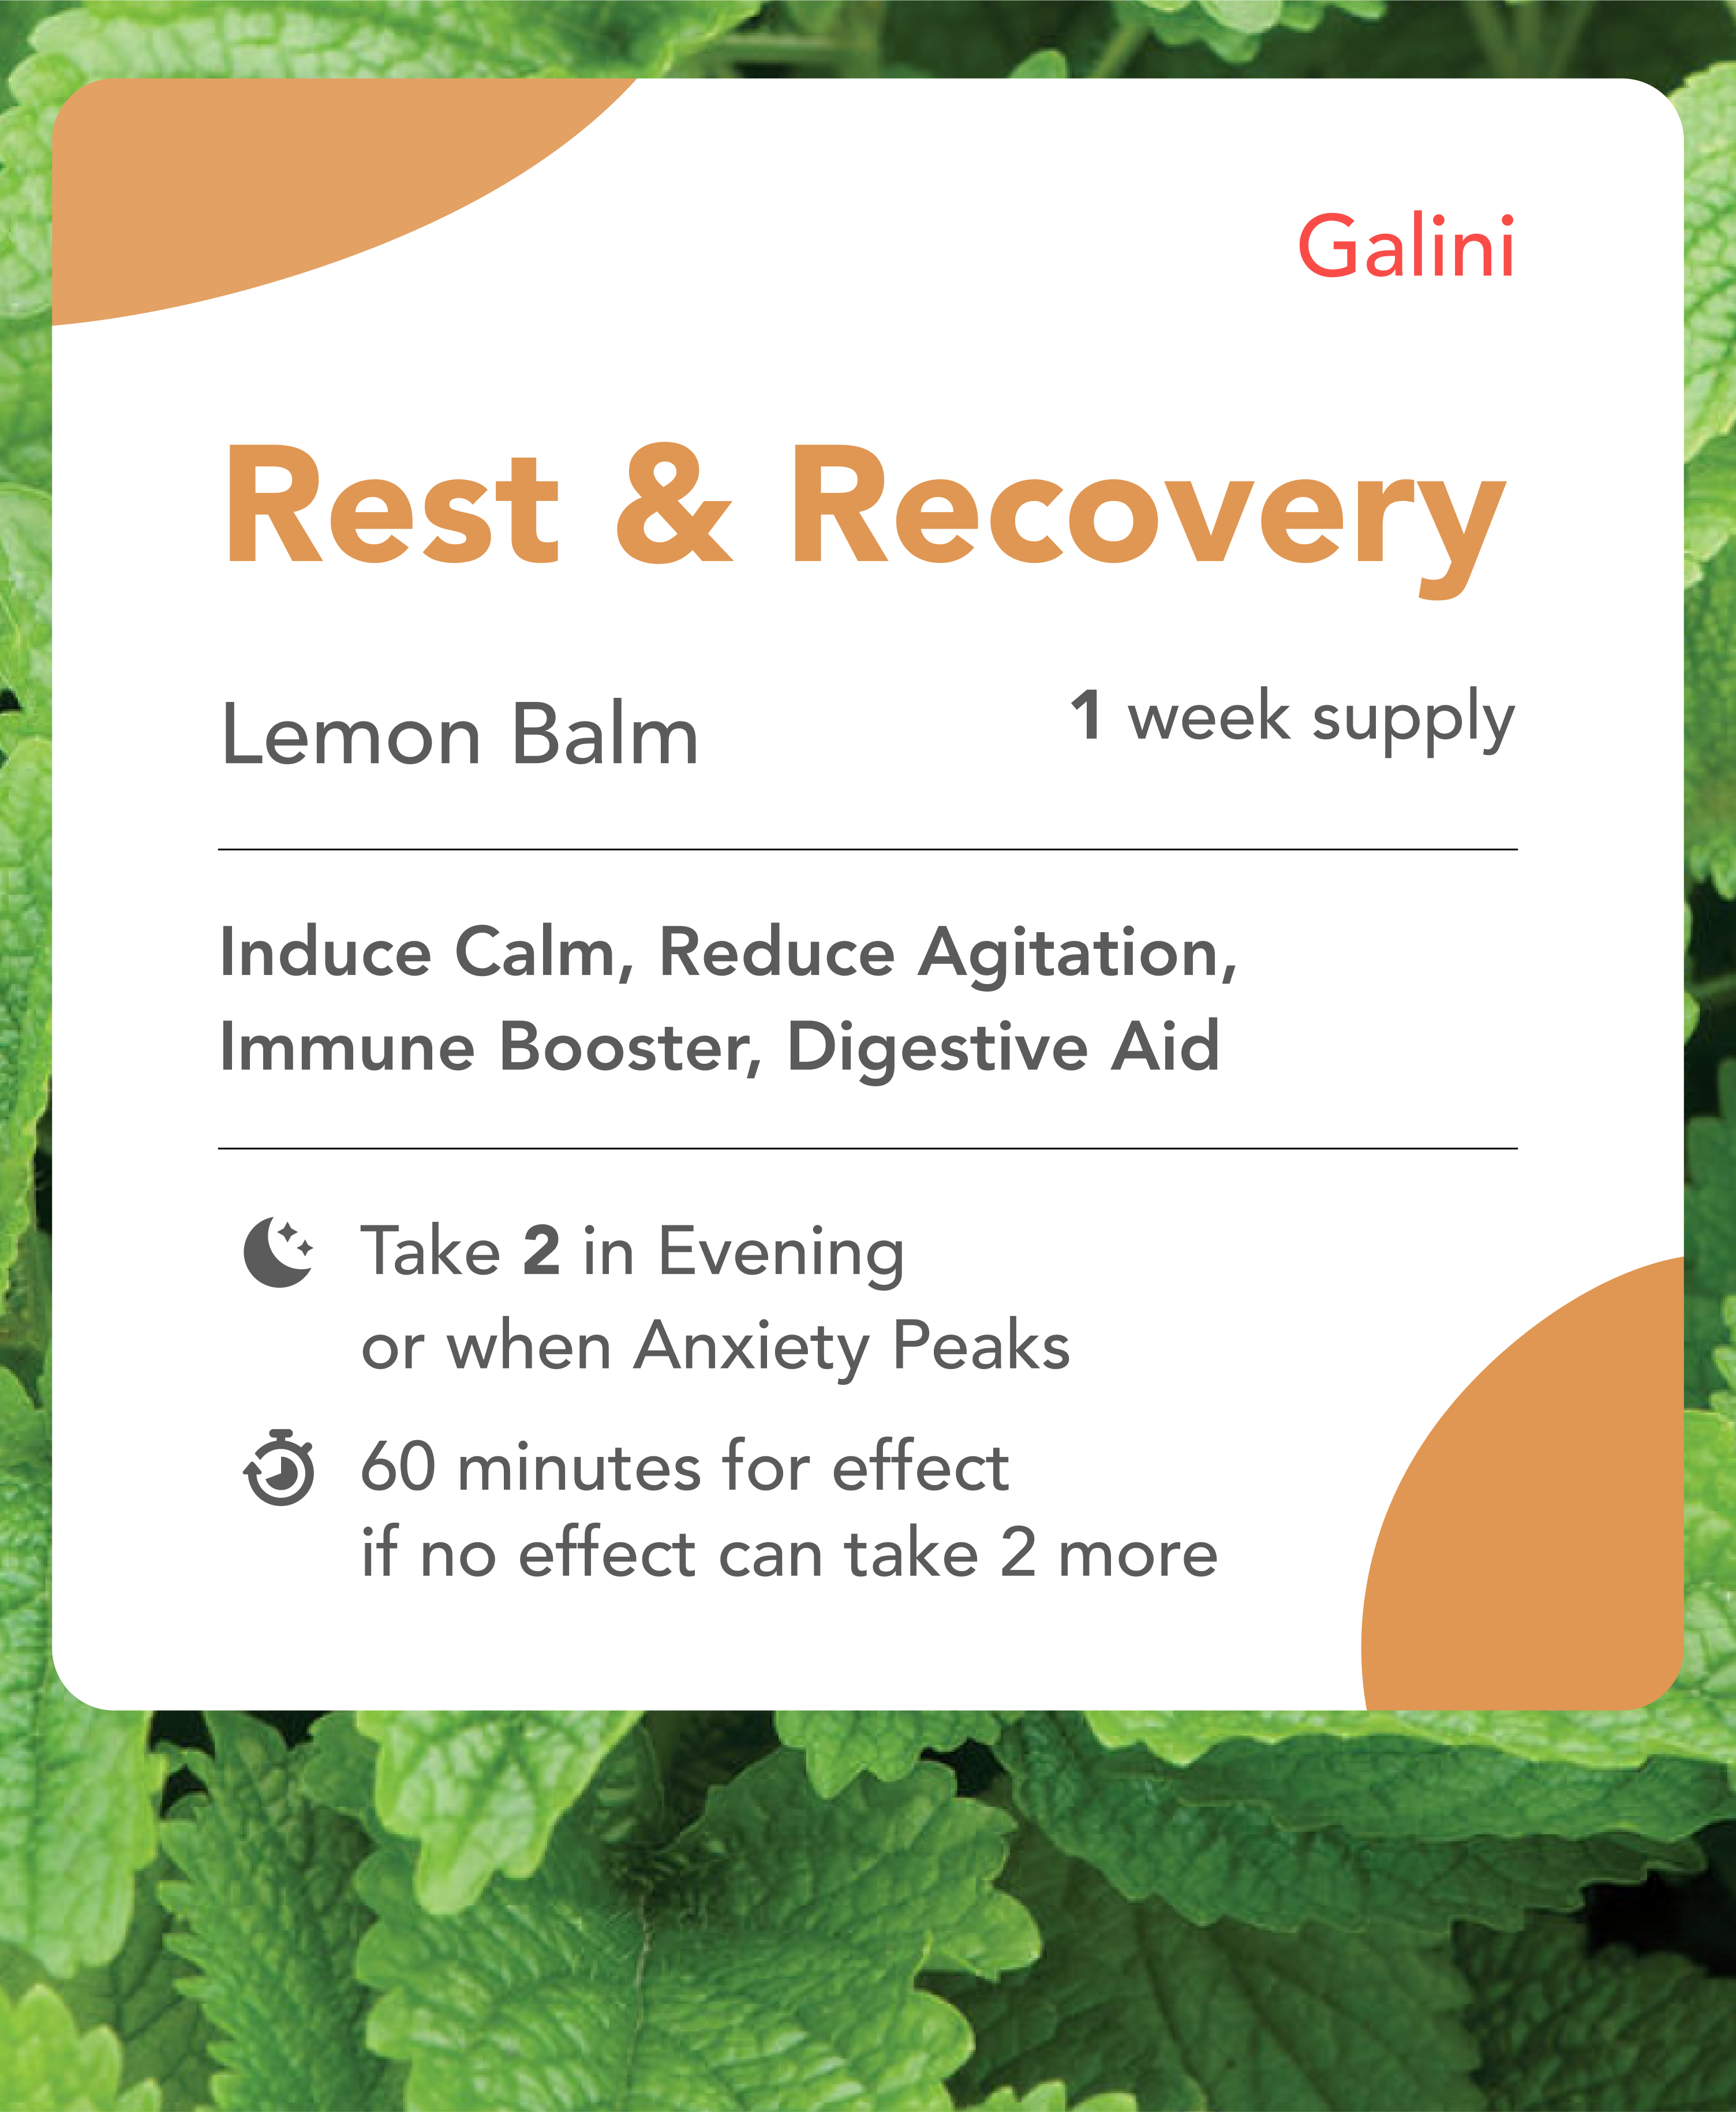 Rest and Recovery supplement containing Lemon Balm with Nature Background